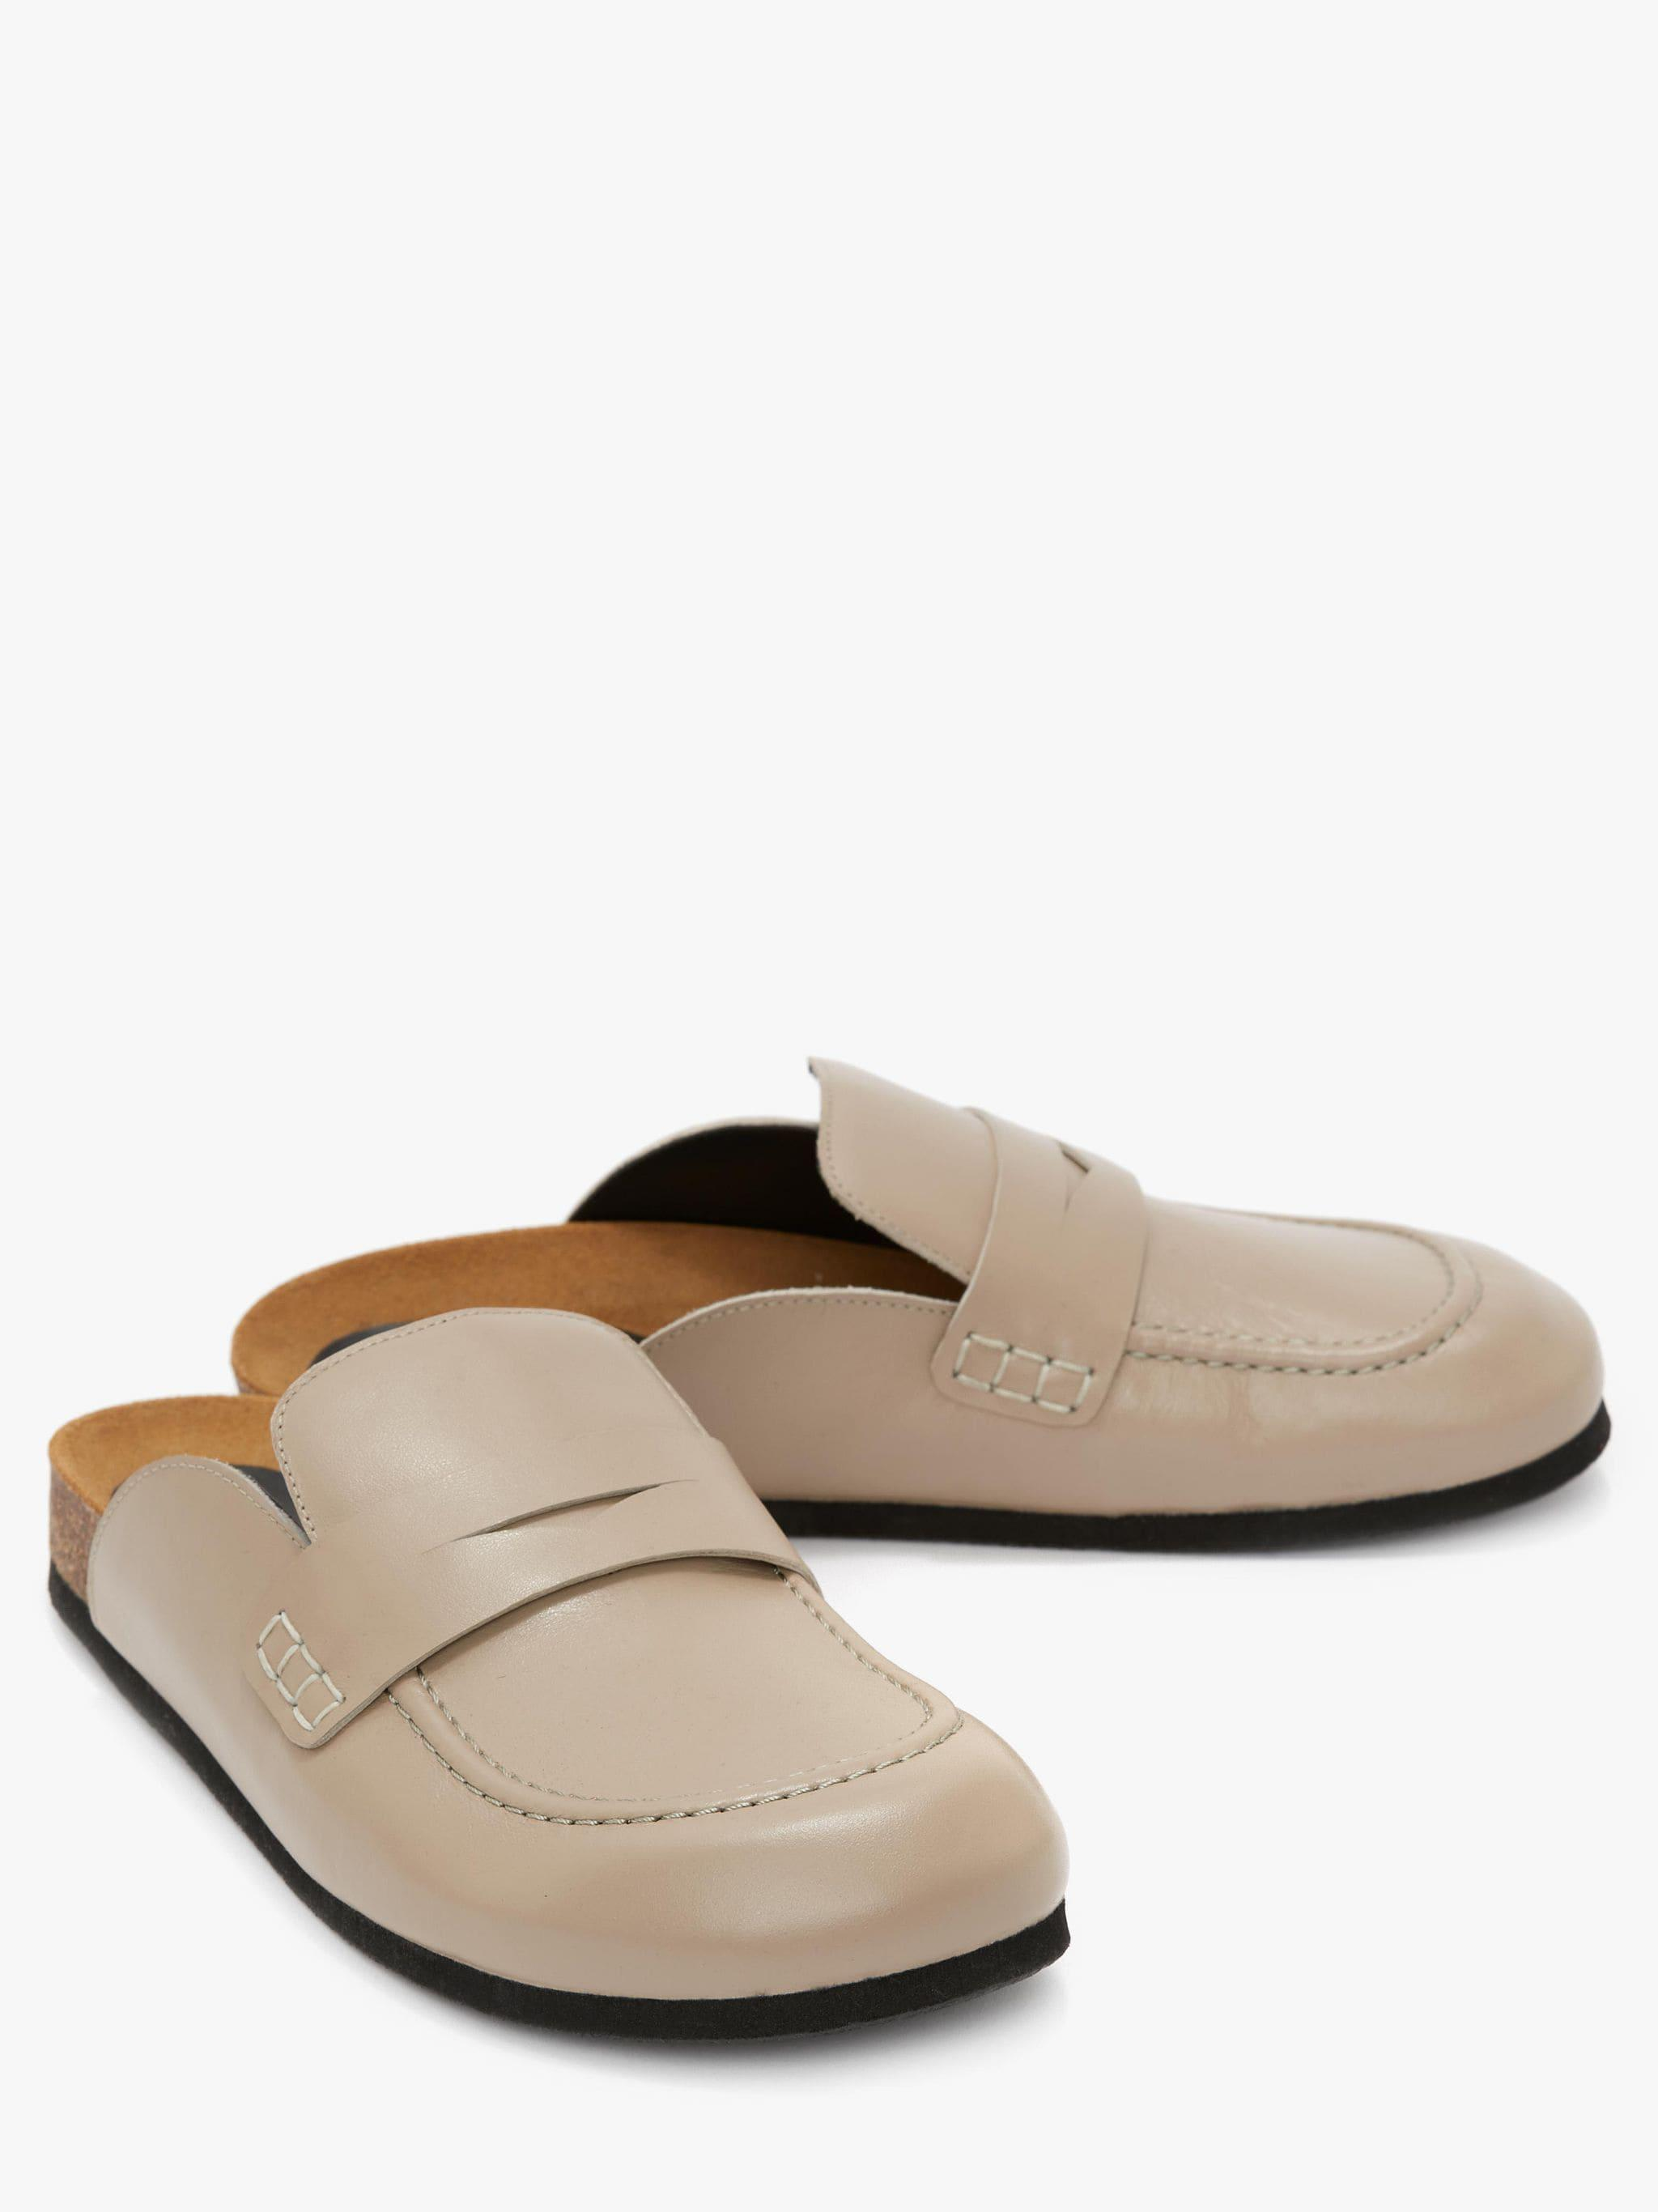 WOMEN'S LEATHER LOAFER MULES 1